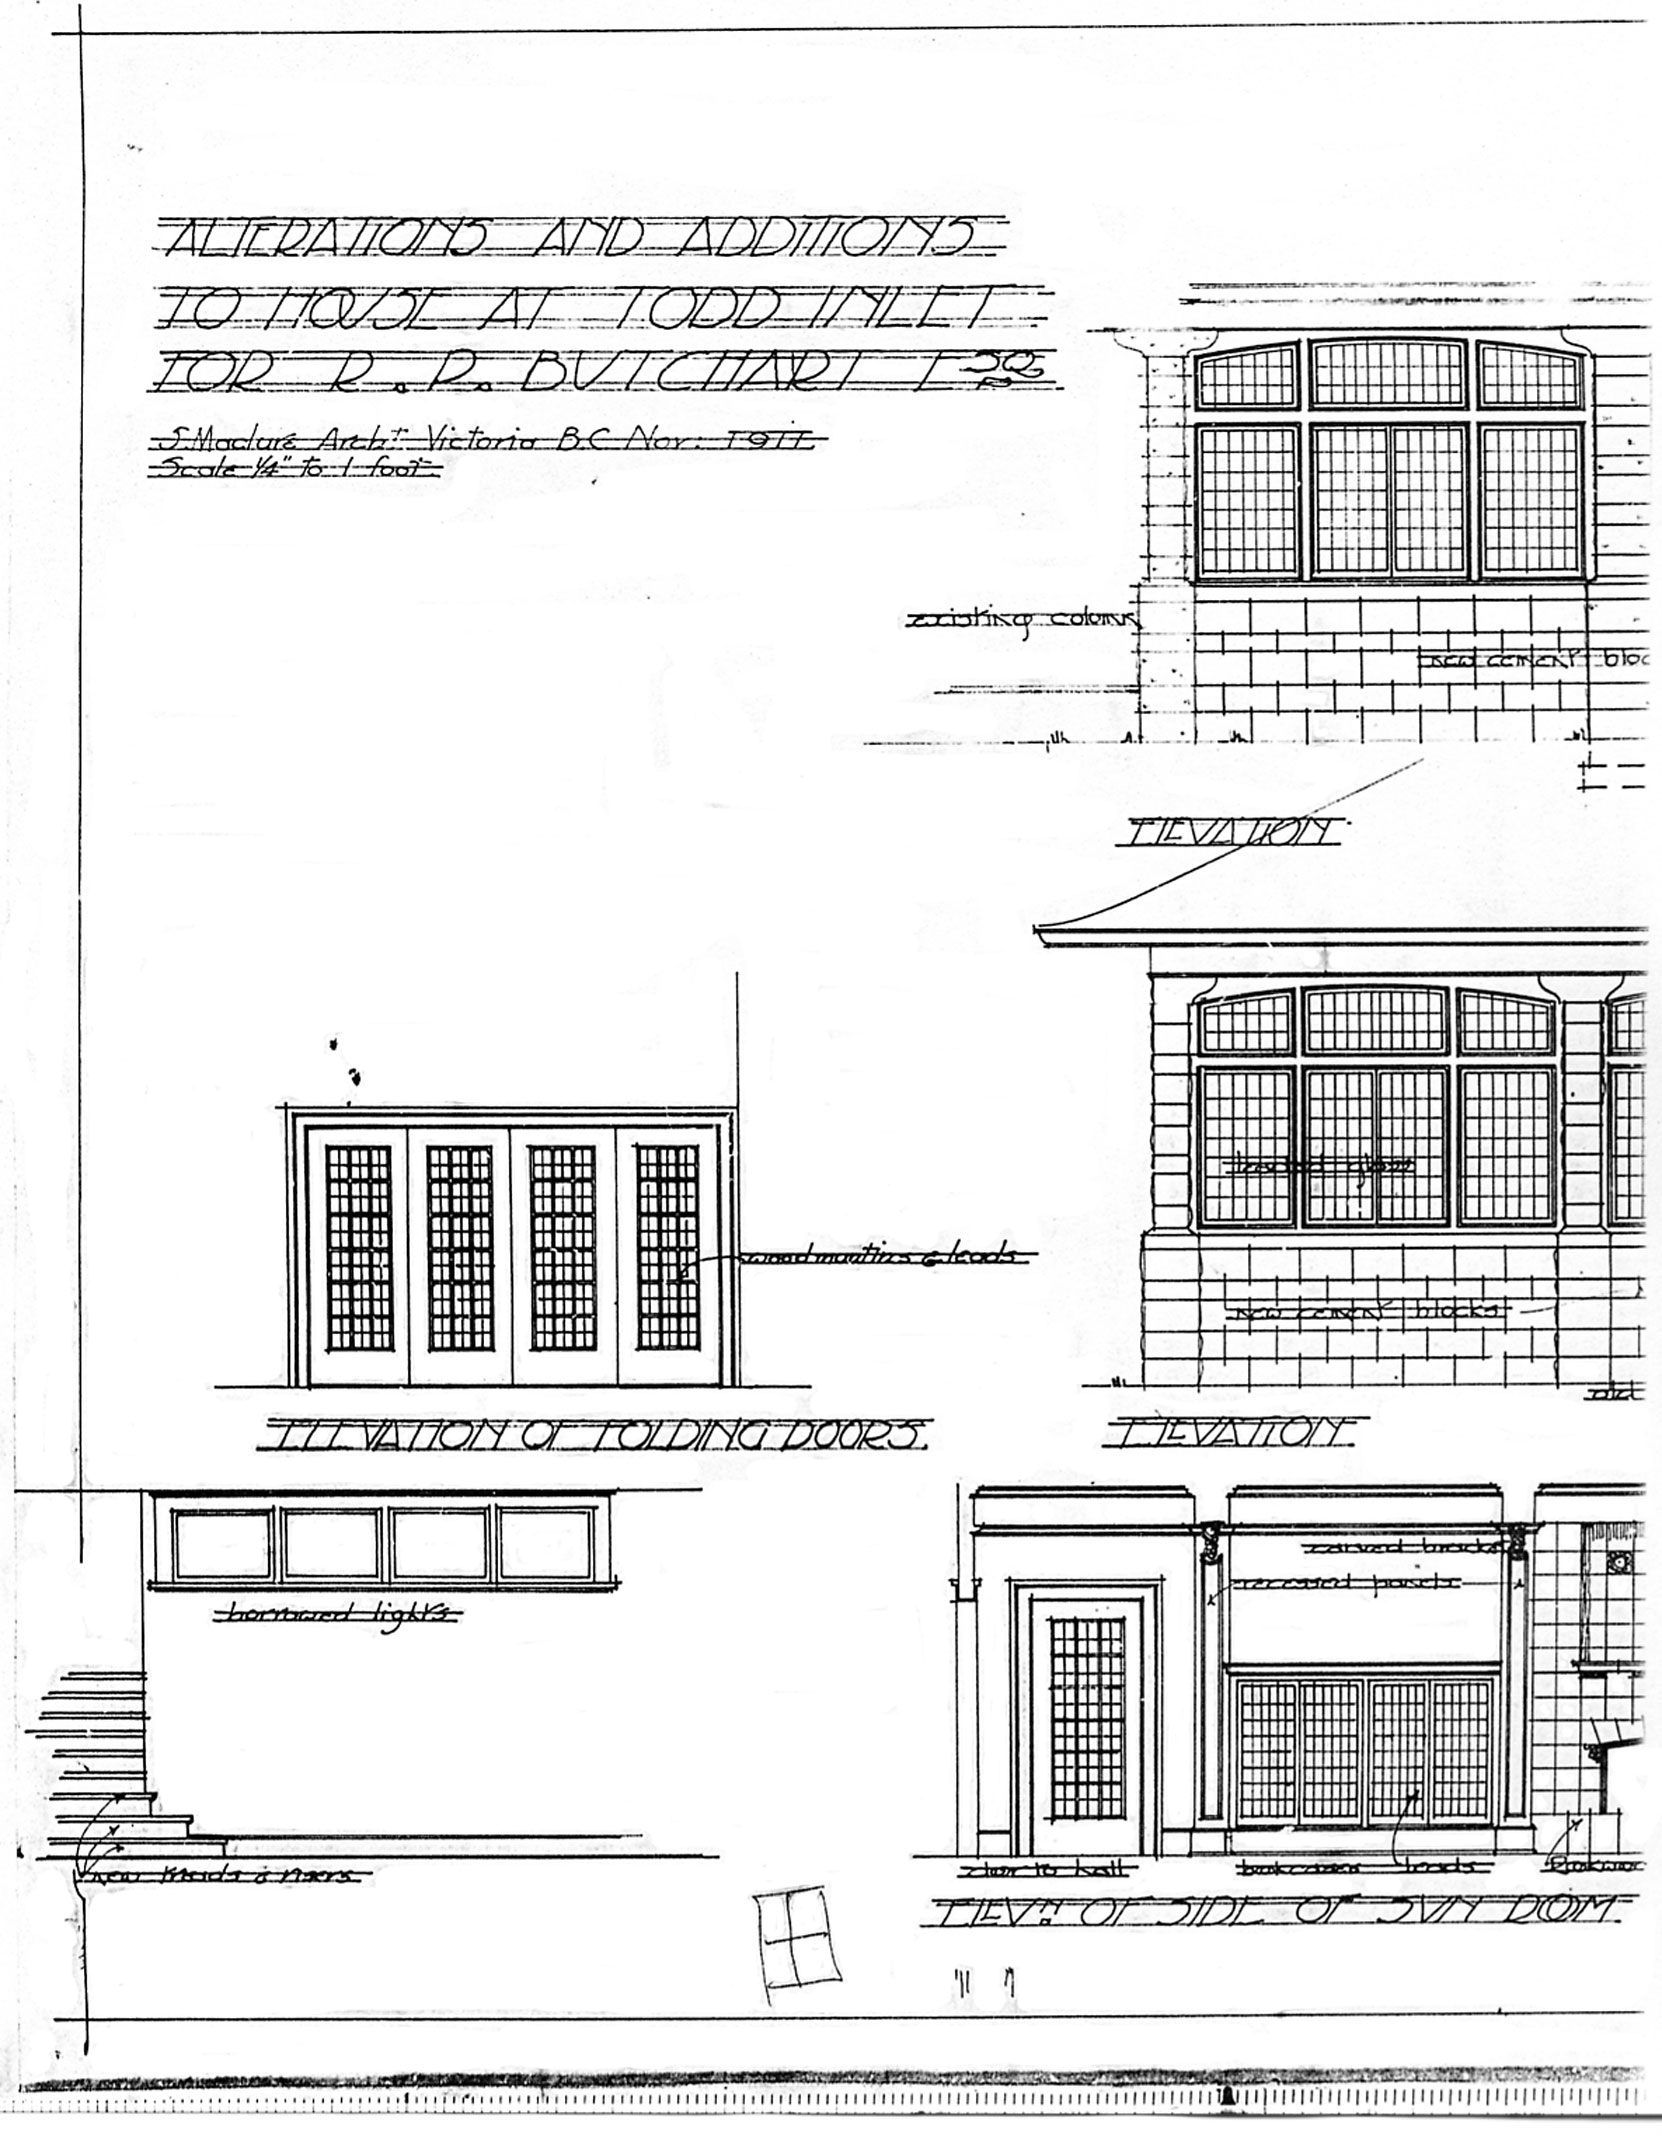 Samuel Maclure architectural drawing in interior and exterior details of the Sunroom Addition at Benvenuto, November 1911. (Courtesy of UVic Library - Special Collections)